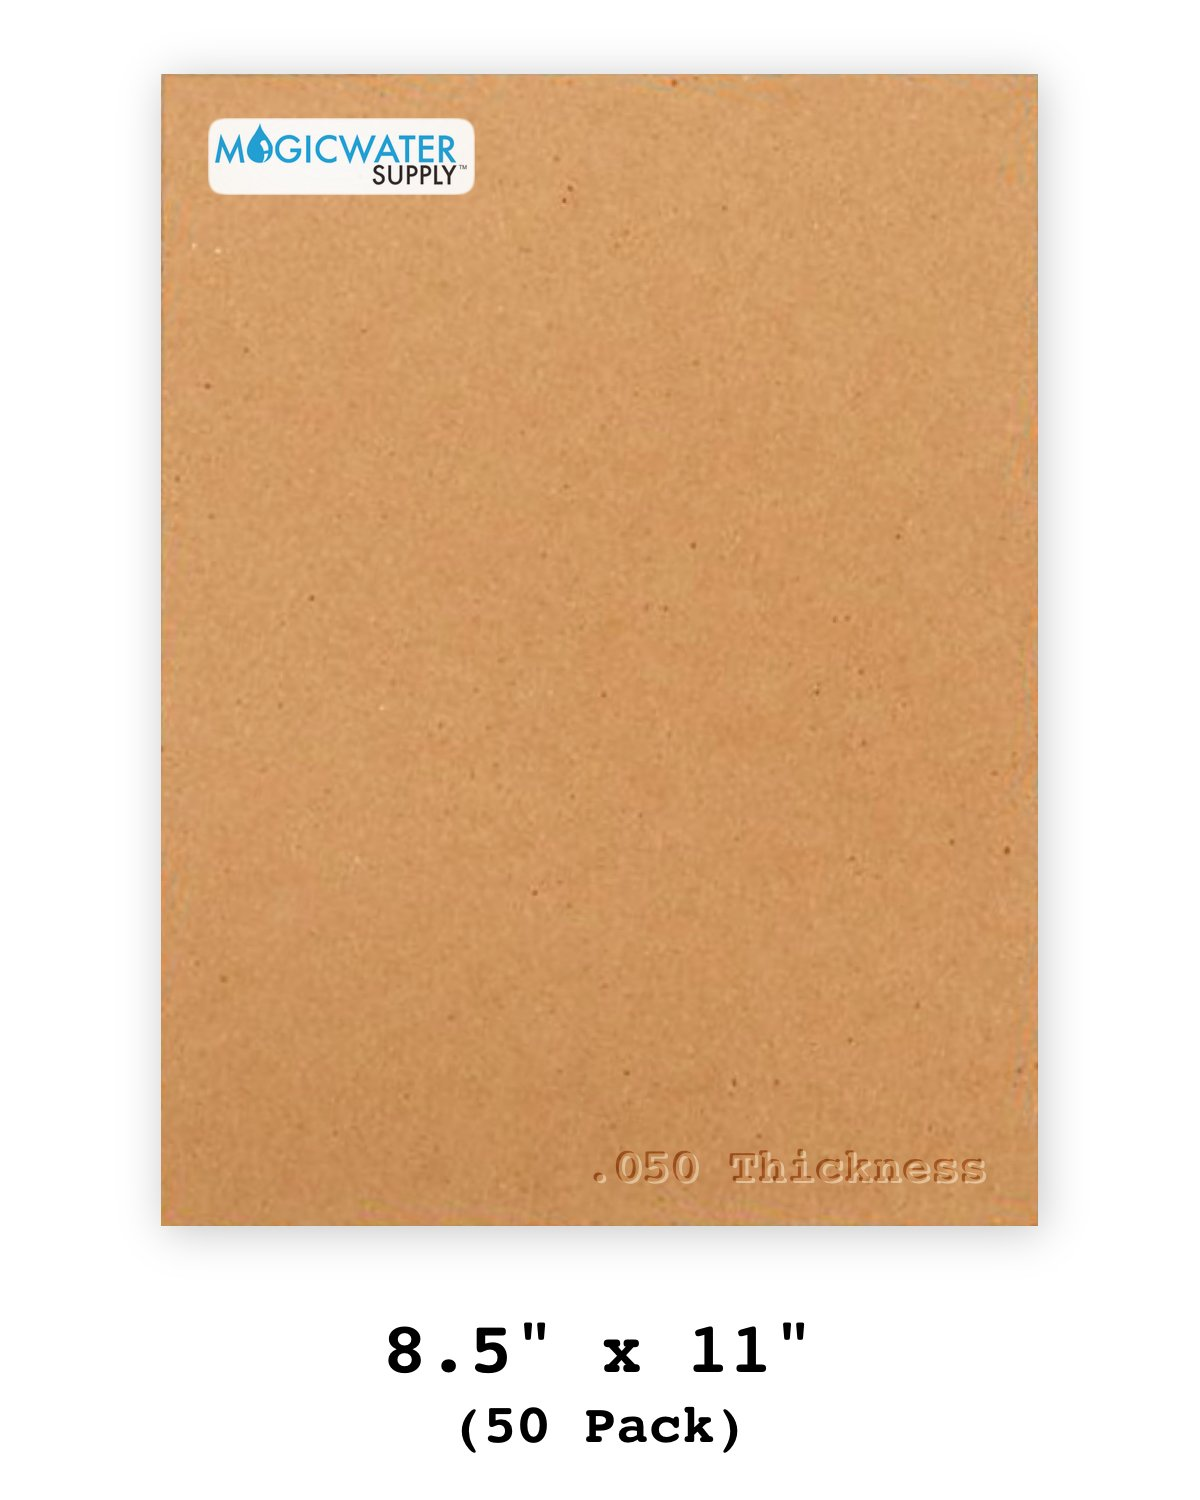 50 Sheets Chipboard 8.5 x 11 inch - 50pt (point) Heavy Weight Brown Kraft Cardboard Scrapbook Sheets & Picture Frame Backing (.050 Caliper Thick) Paper Board | MagicWater Supply